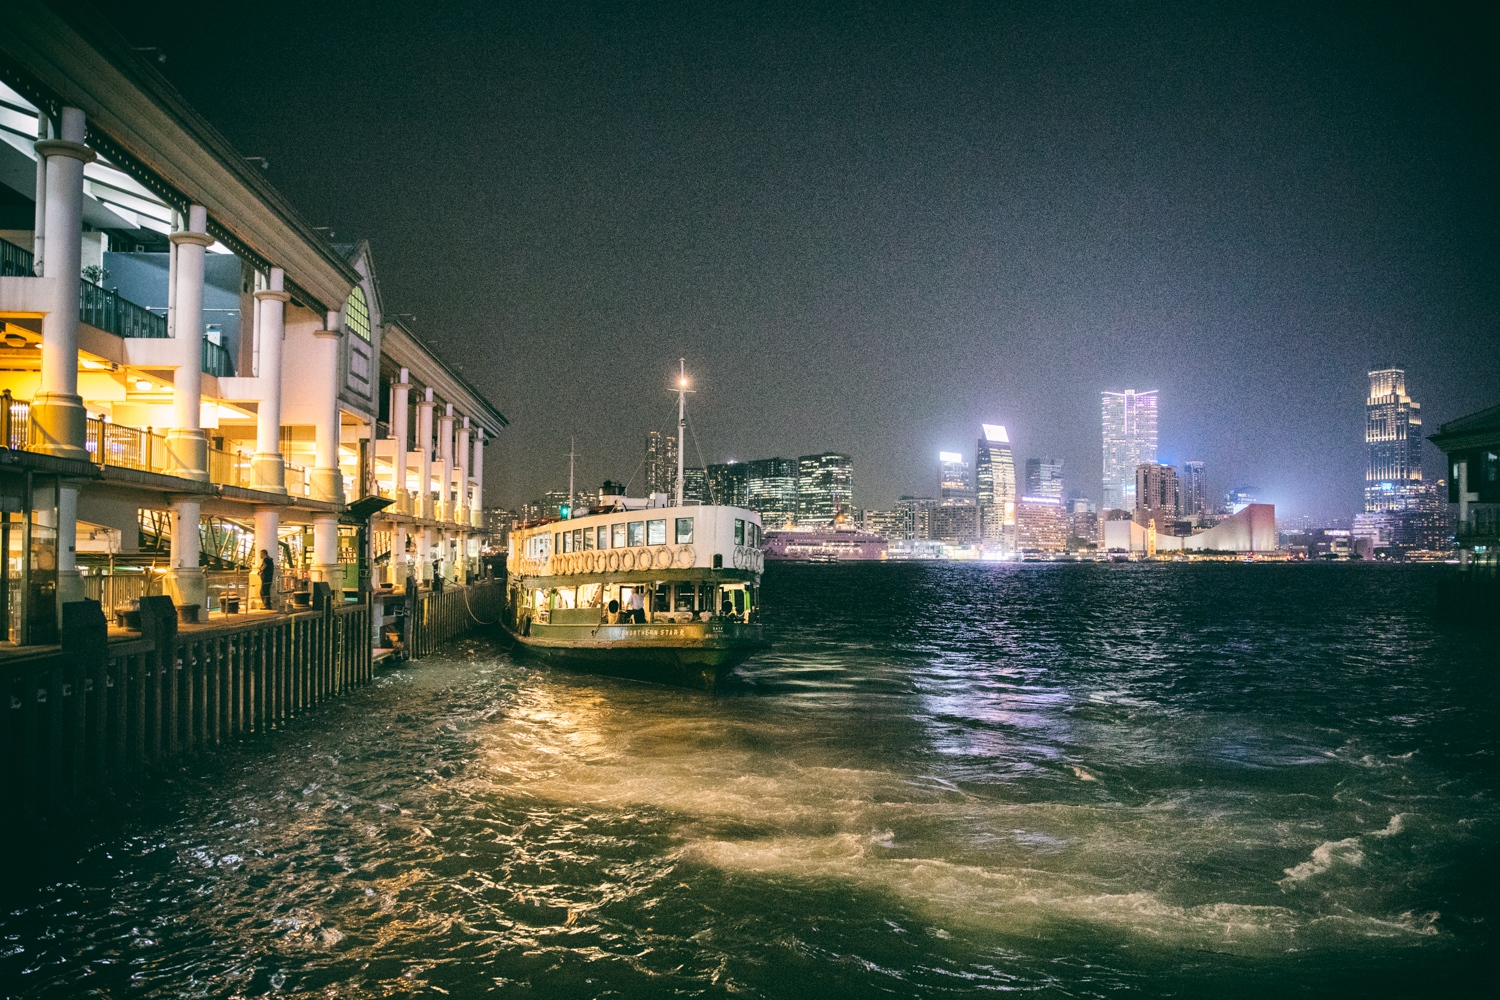 Hong Kong Docks